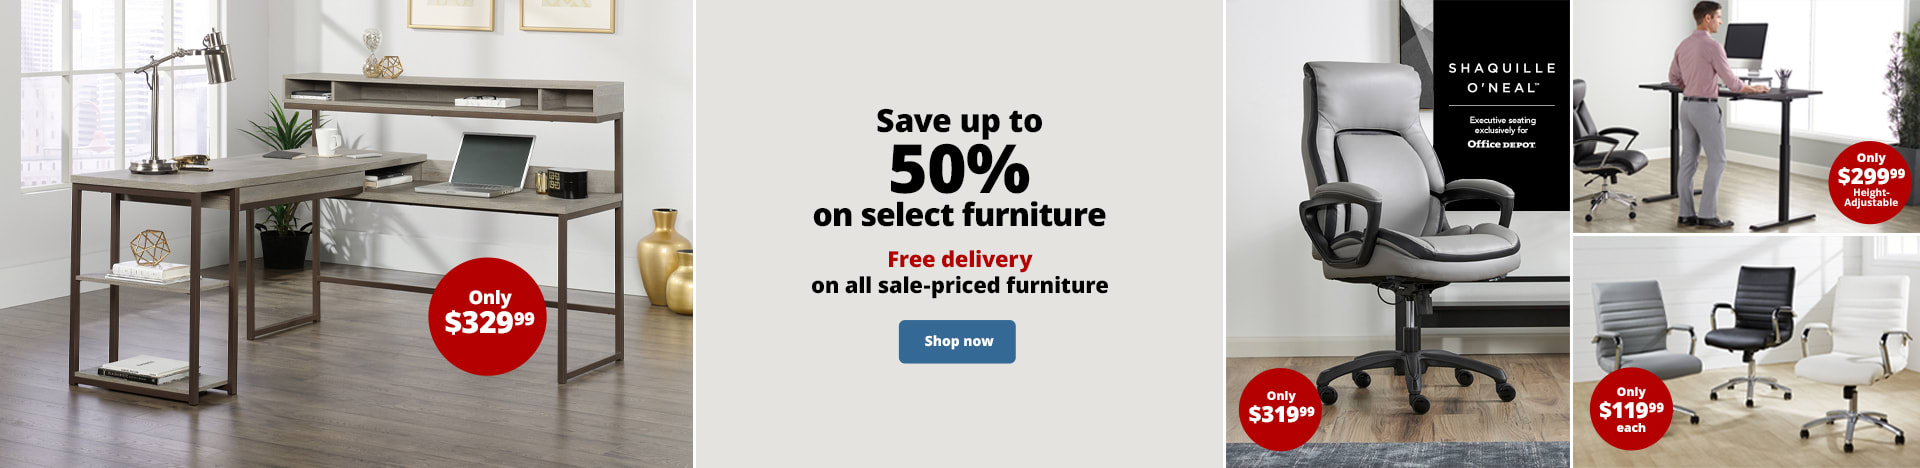 Save up to 50% on select furniture. Free delivery on all sale-priced furniture